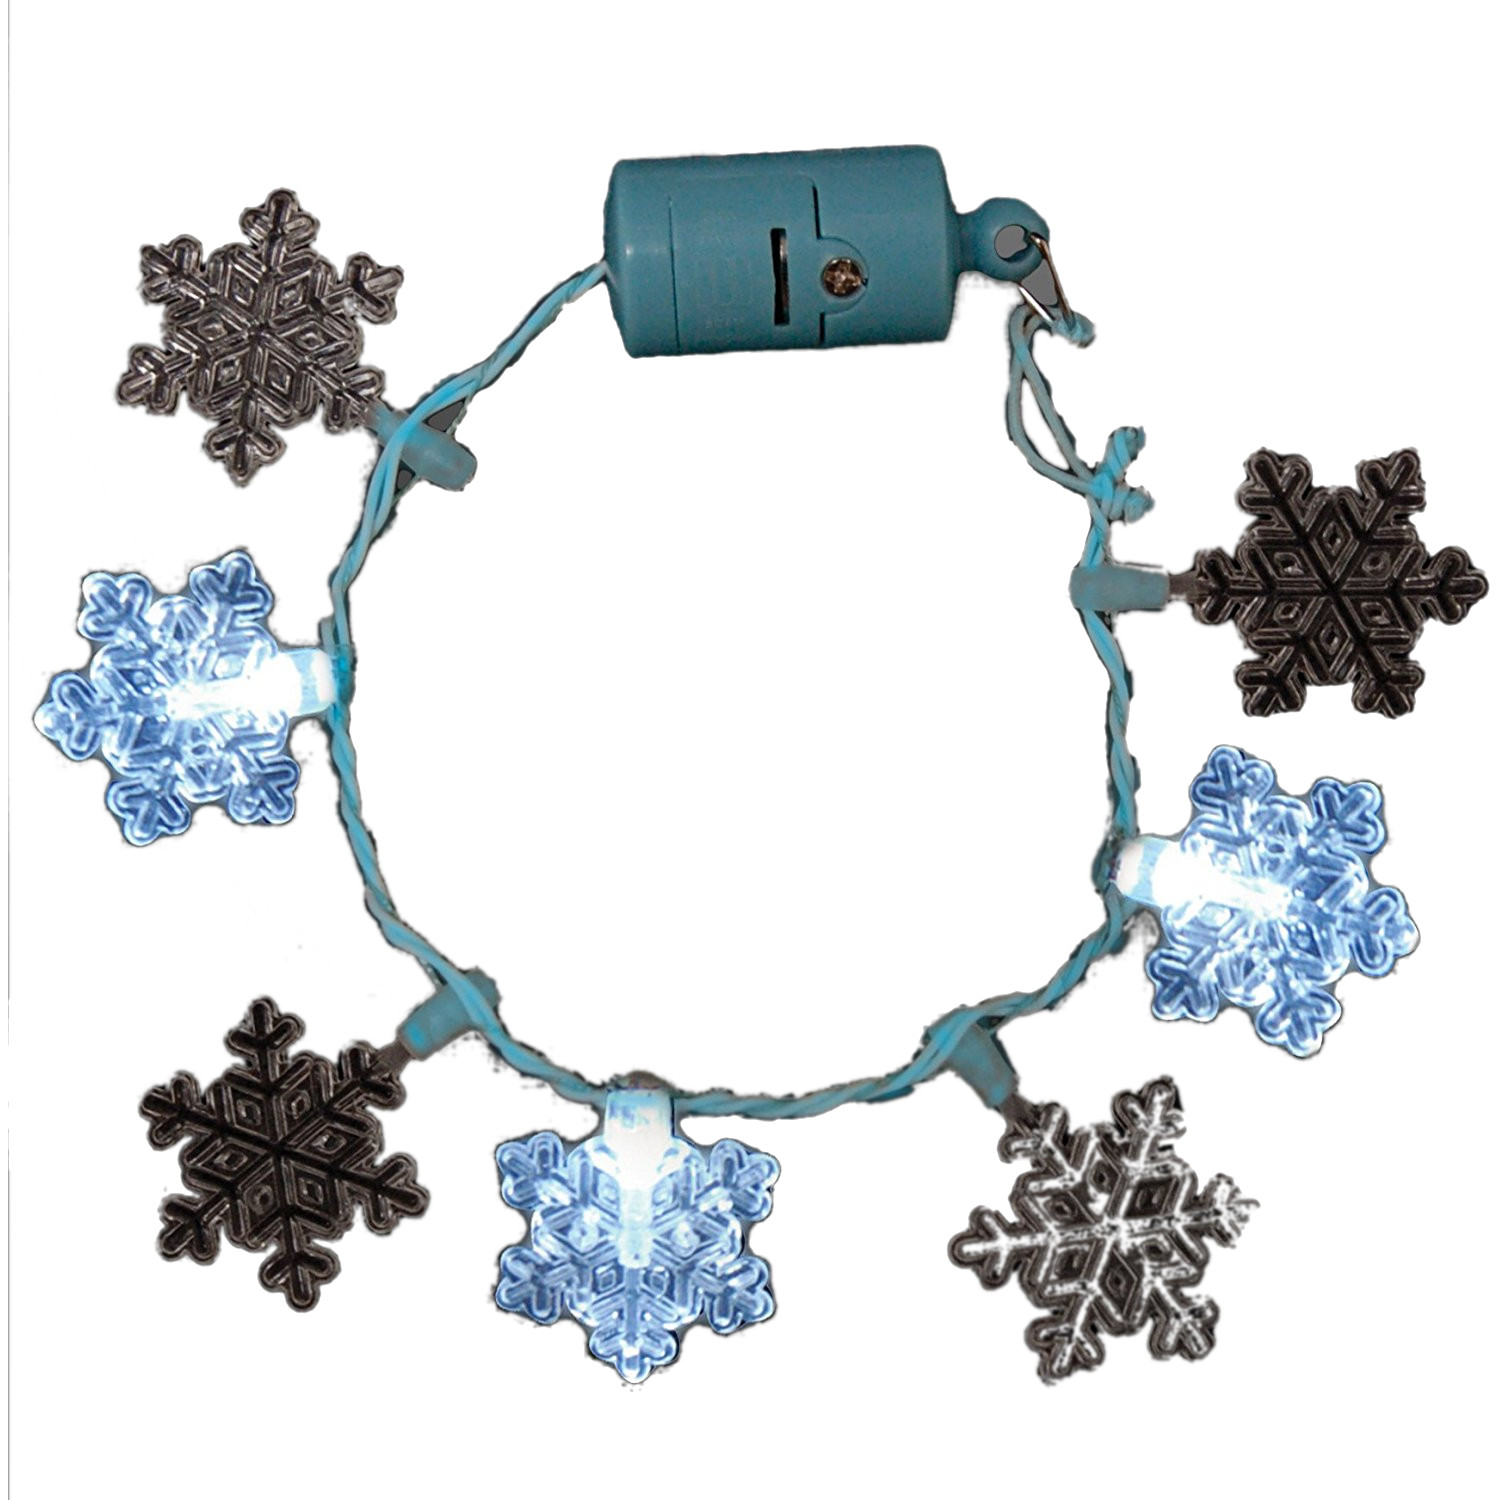 Snowflake String Lights Bracelet All Products